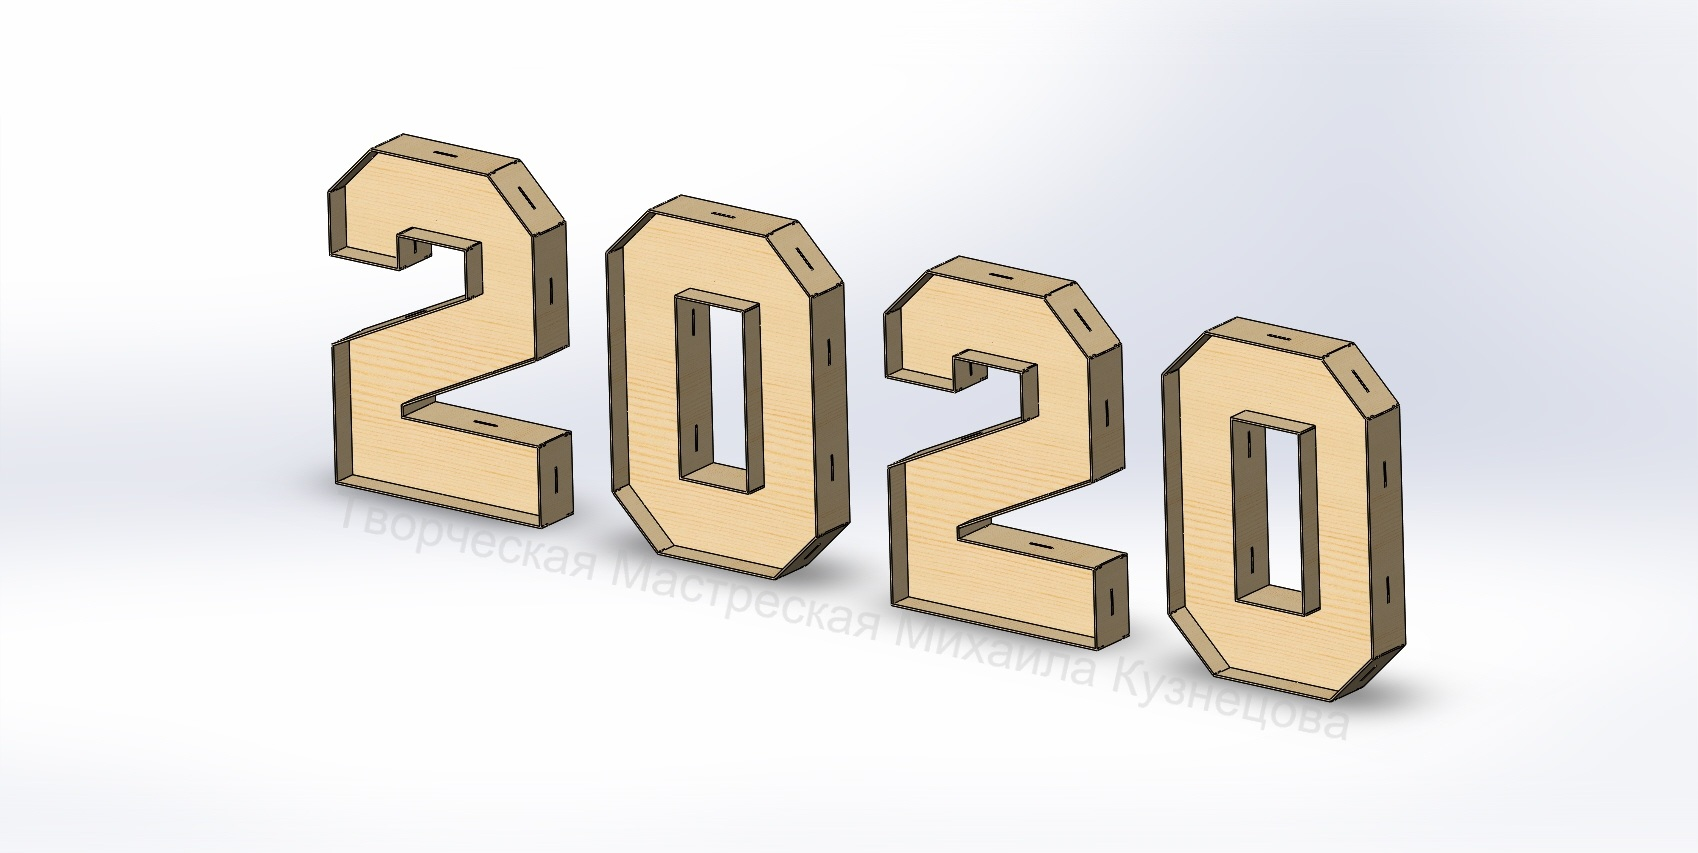 Laser Cut New Year 2020 DXF File